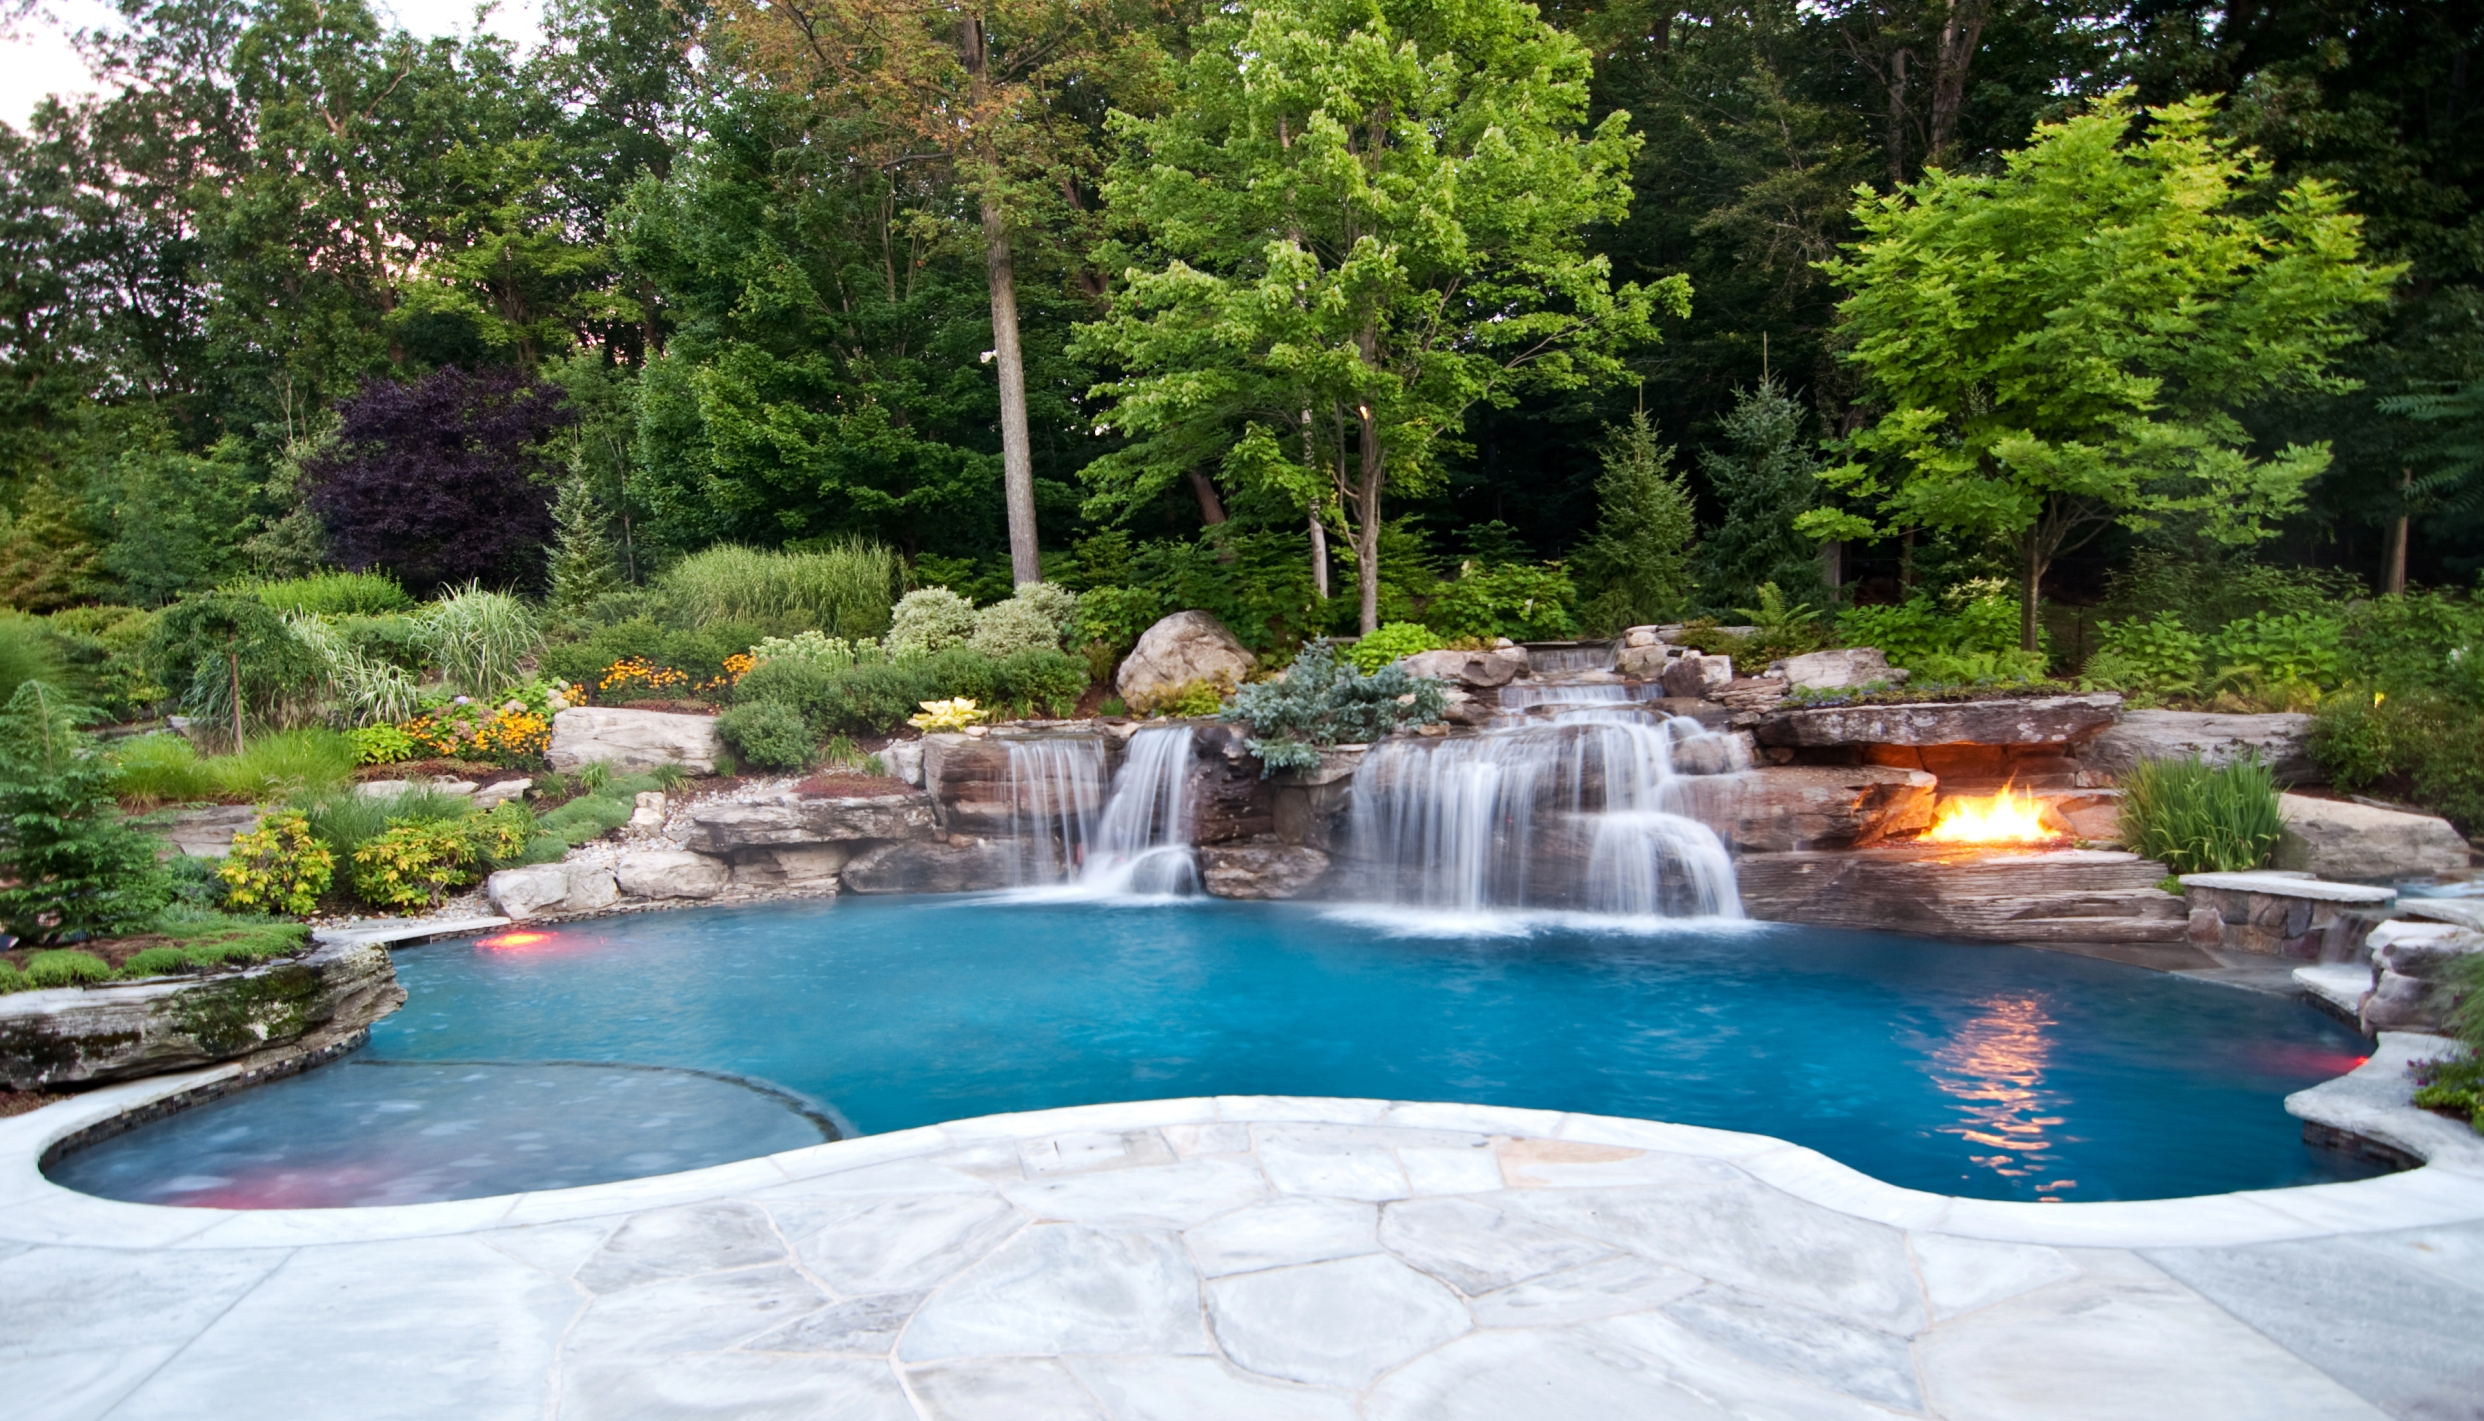 New jersey pool renovation company earns international award for natural pool design - Landscape and pool design ...